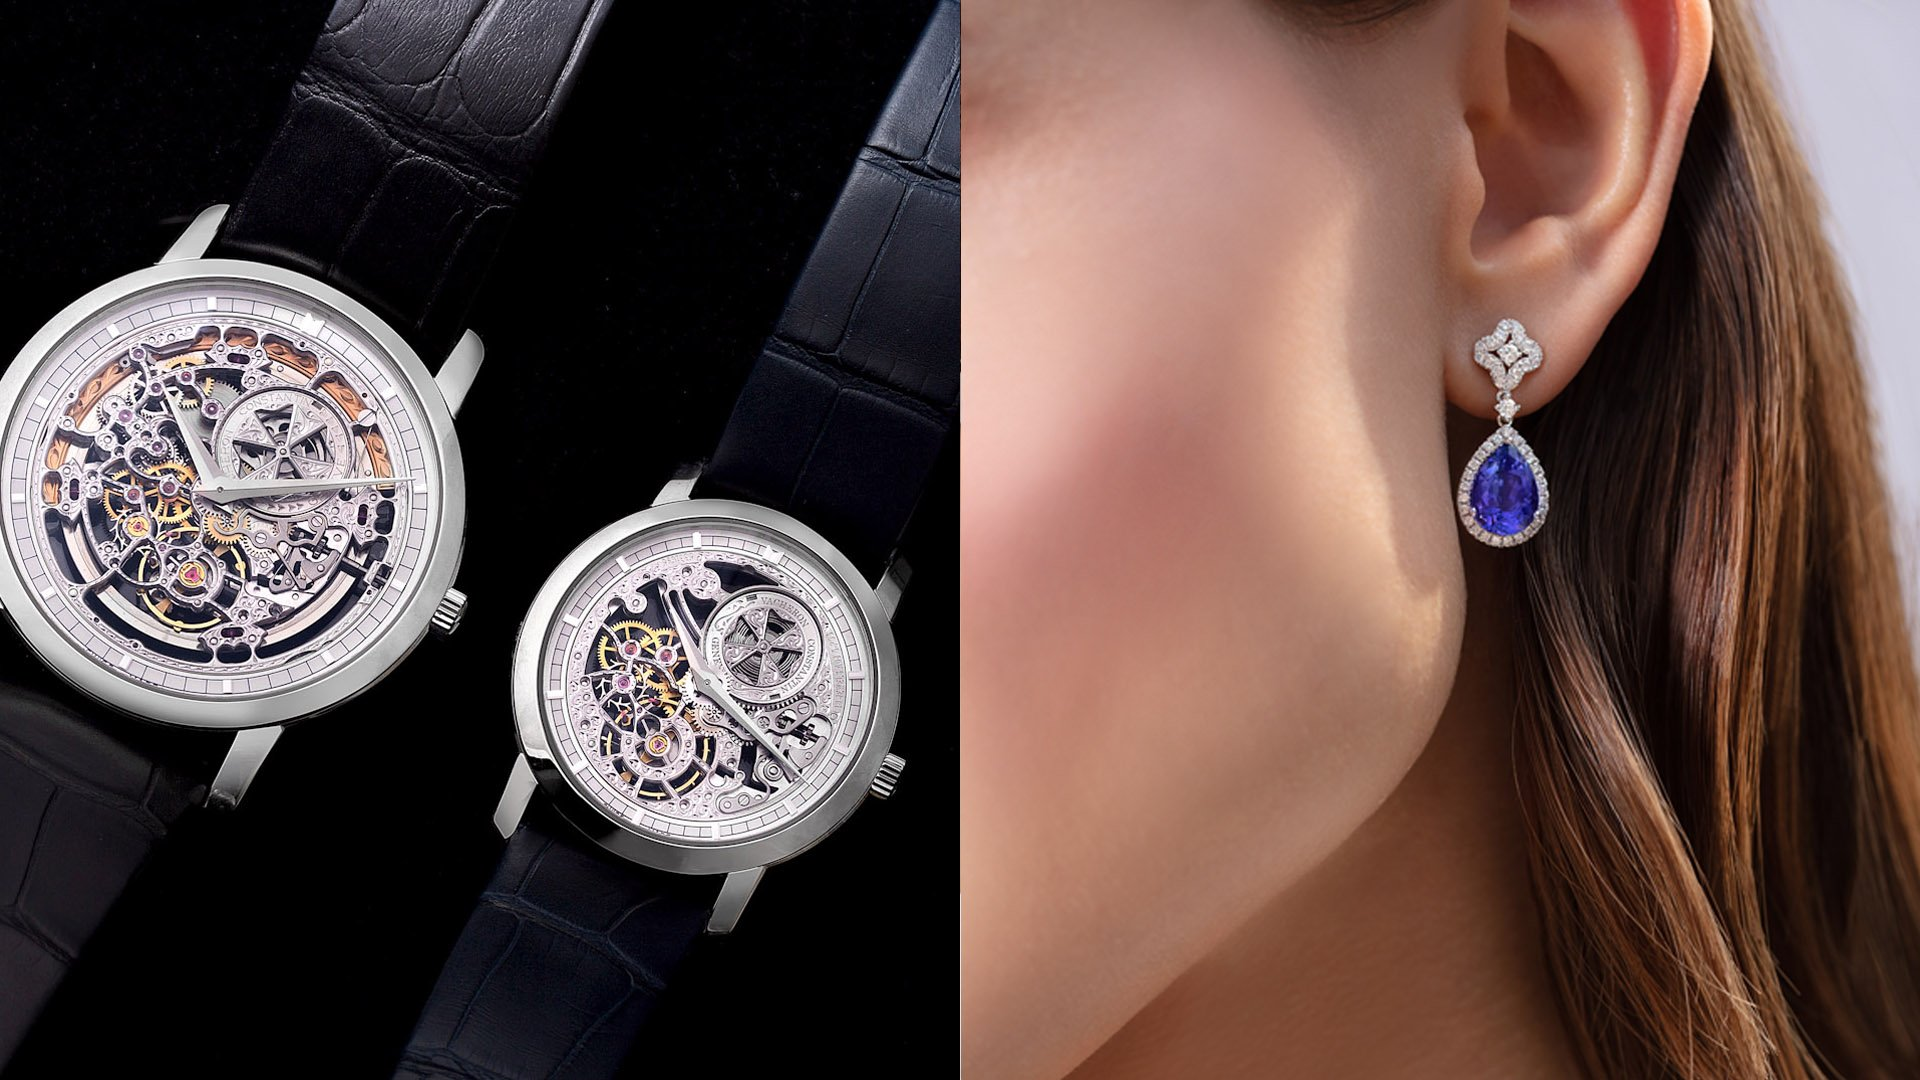 Watch and Jewellery Photographer